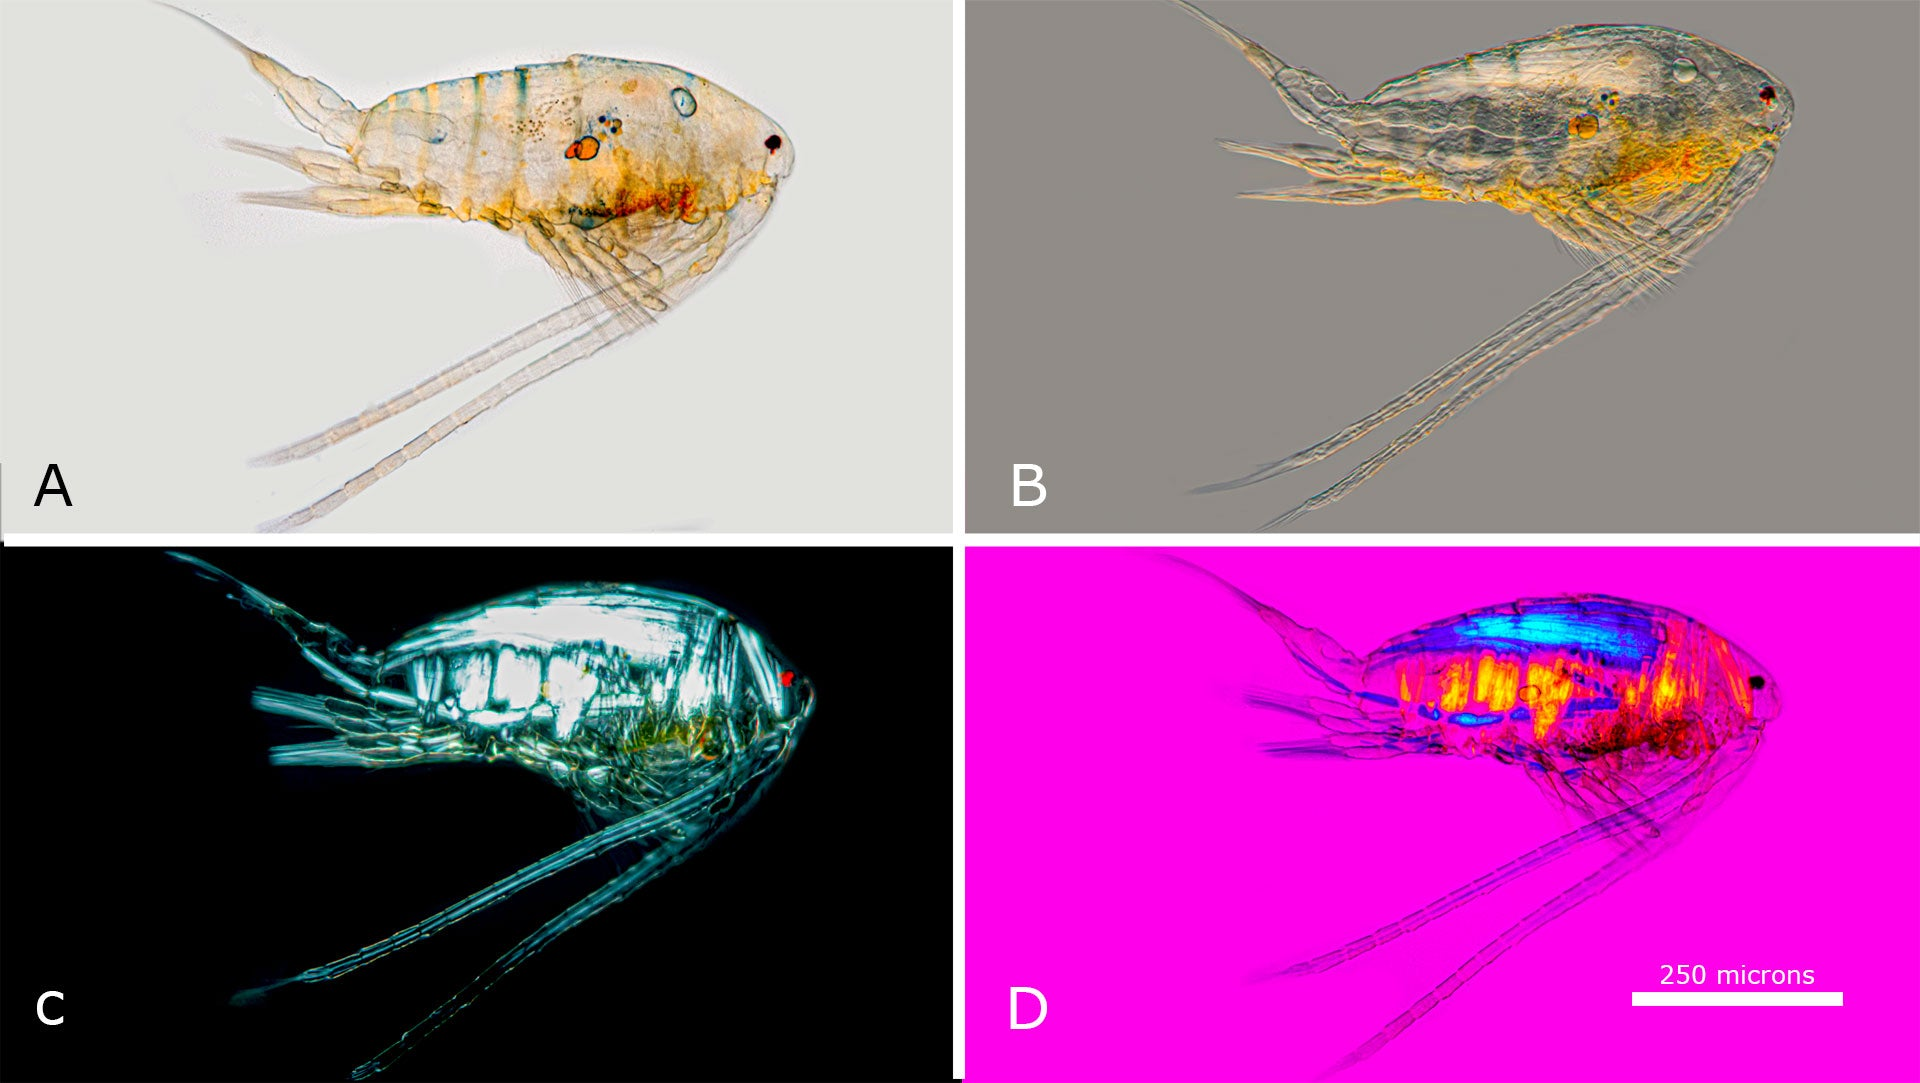 Calanoid Copepods are found in open water on lakes and ponds.  Viewed with A) Bright field microscopy B) DIC microscopy C) Polarizing microscopy D) Polarized light and full wave 550 nm retardation filter.